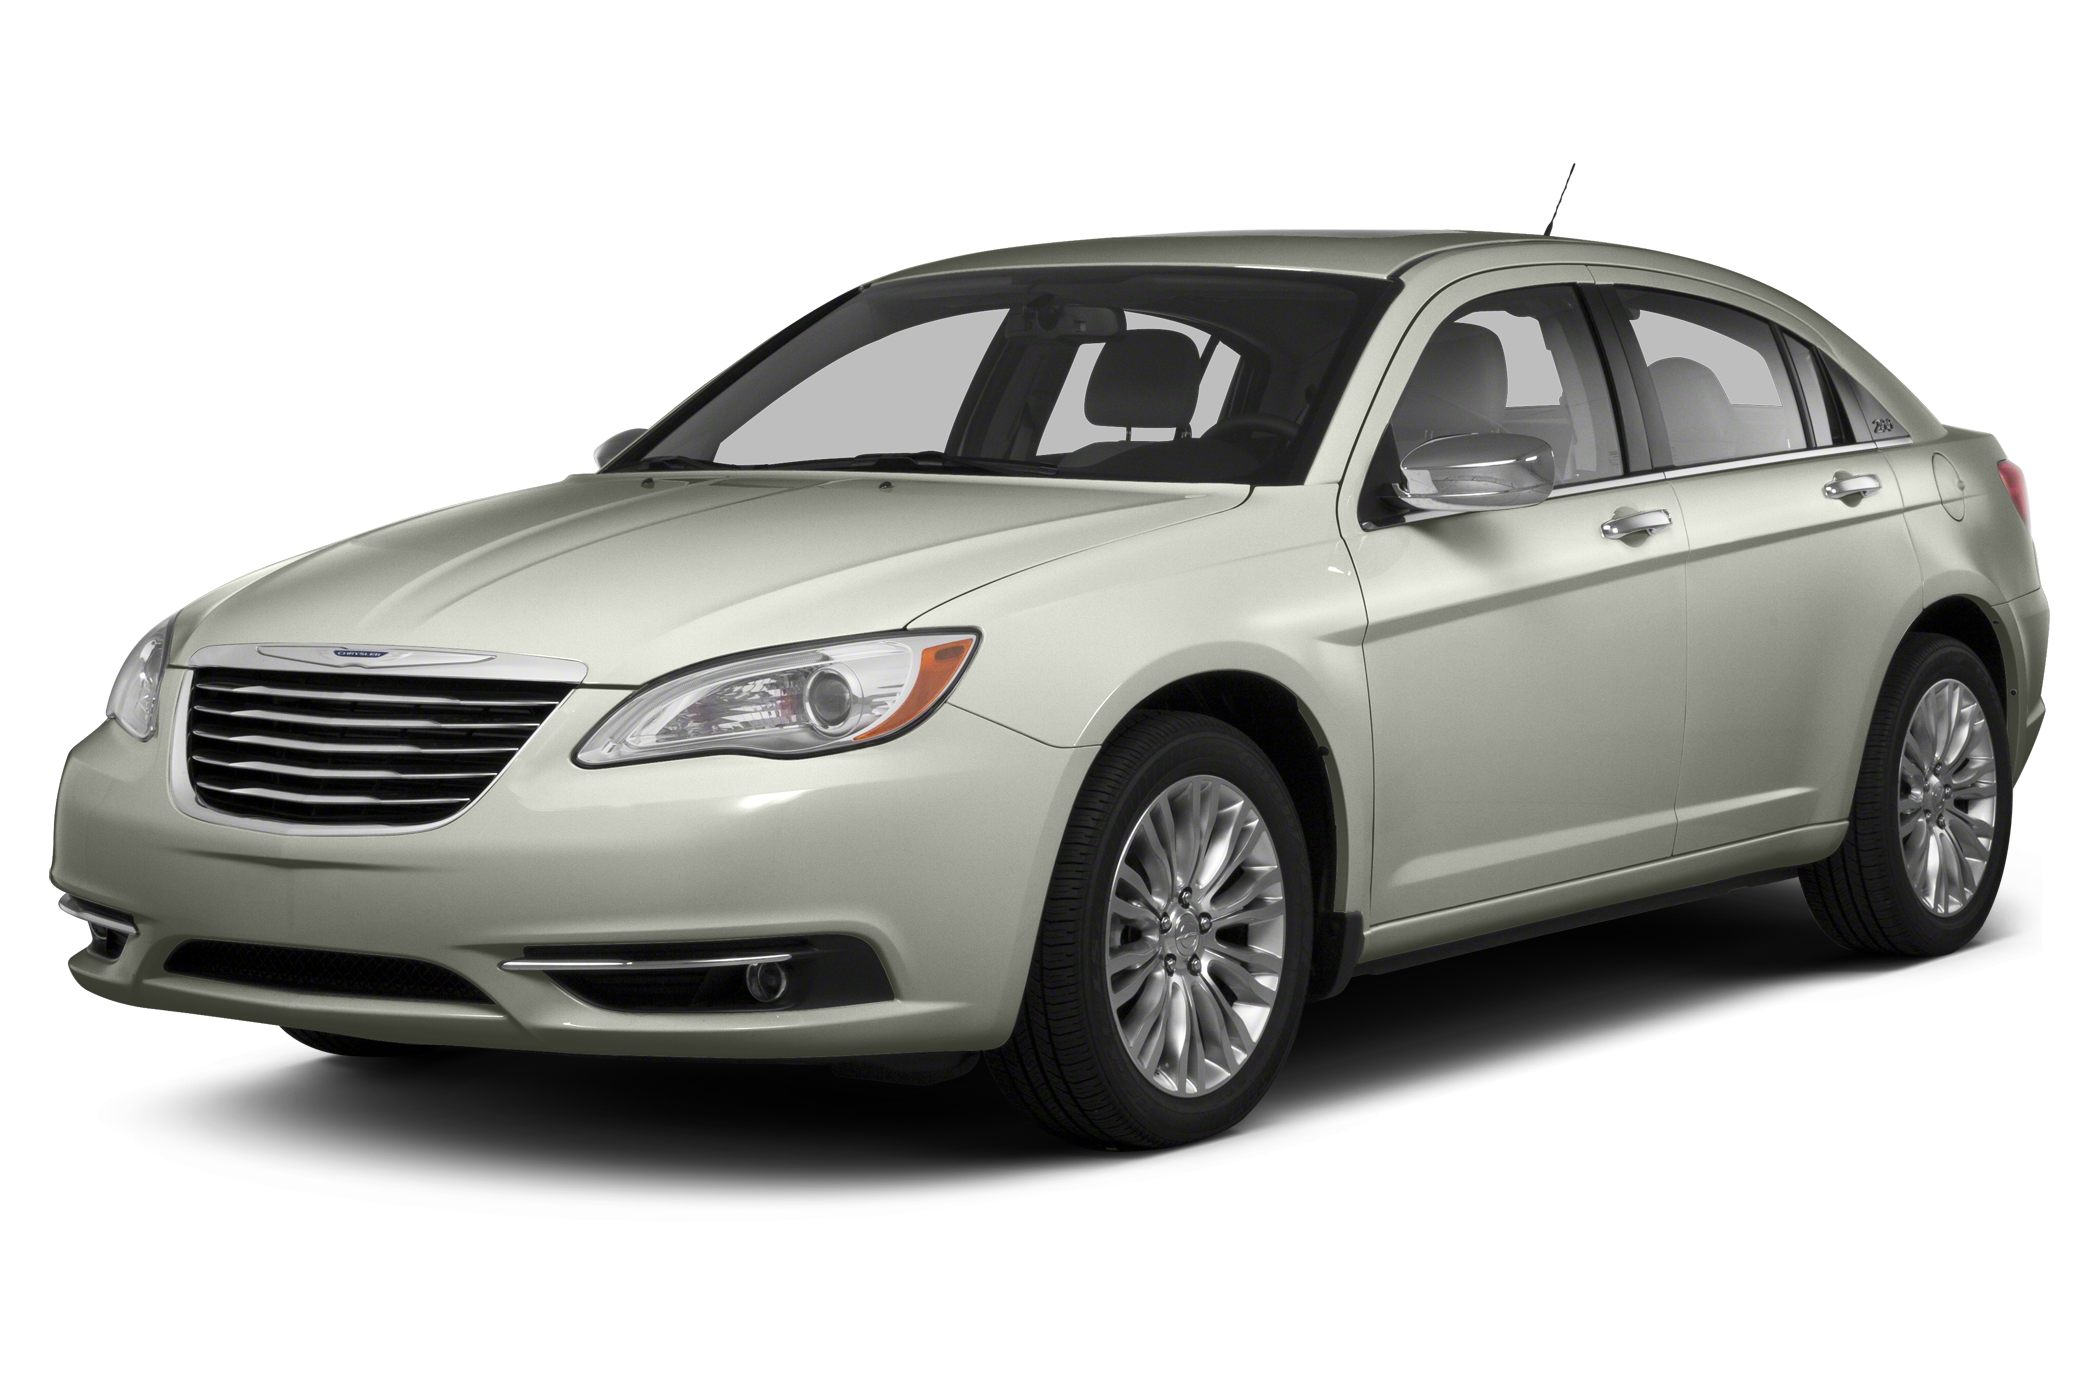 2013 Chrysler 200 Touring  COME SEE THE DIFFERENCE AT TAJ AUTO MALL WE SELL OUR VEHICLES